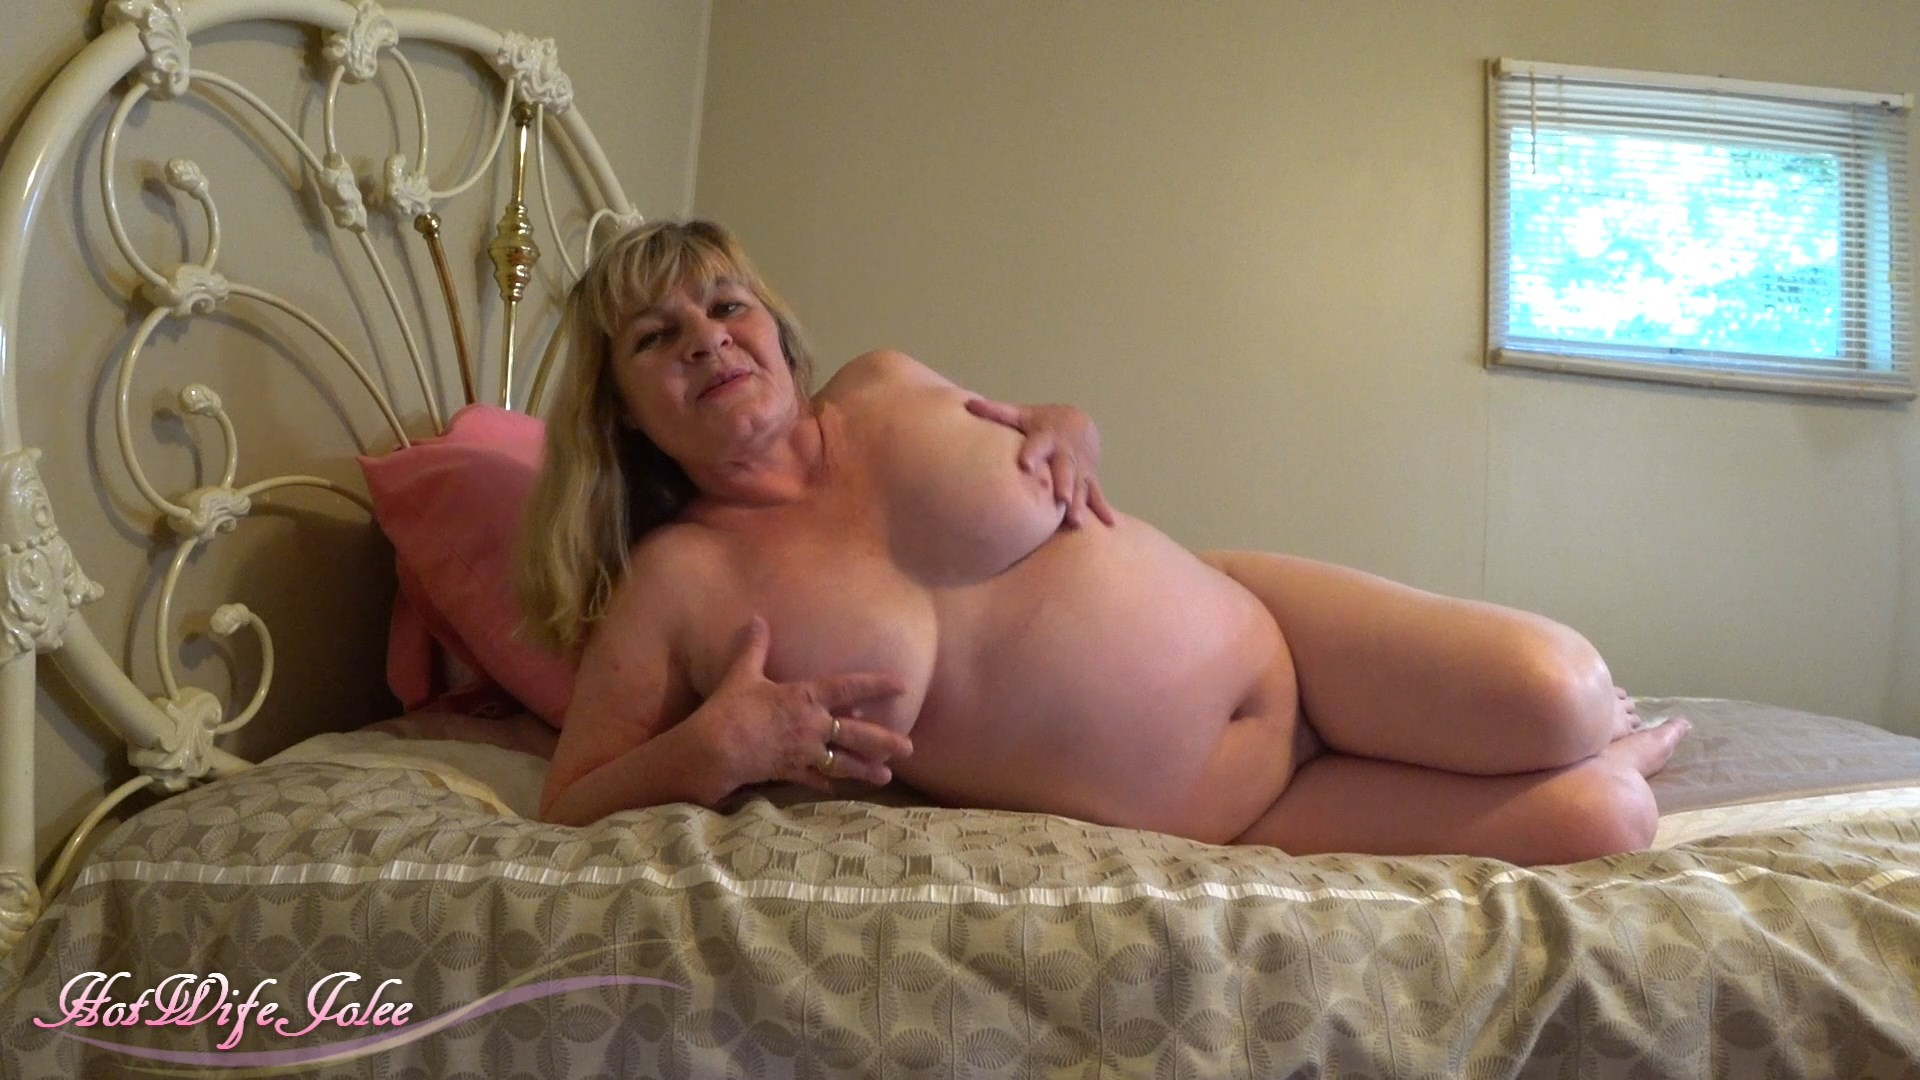 Hot Wife Jolee - Naked Mommy Gives Special Attention